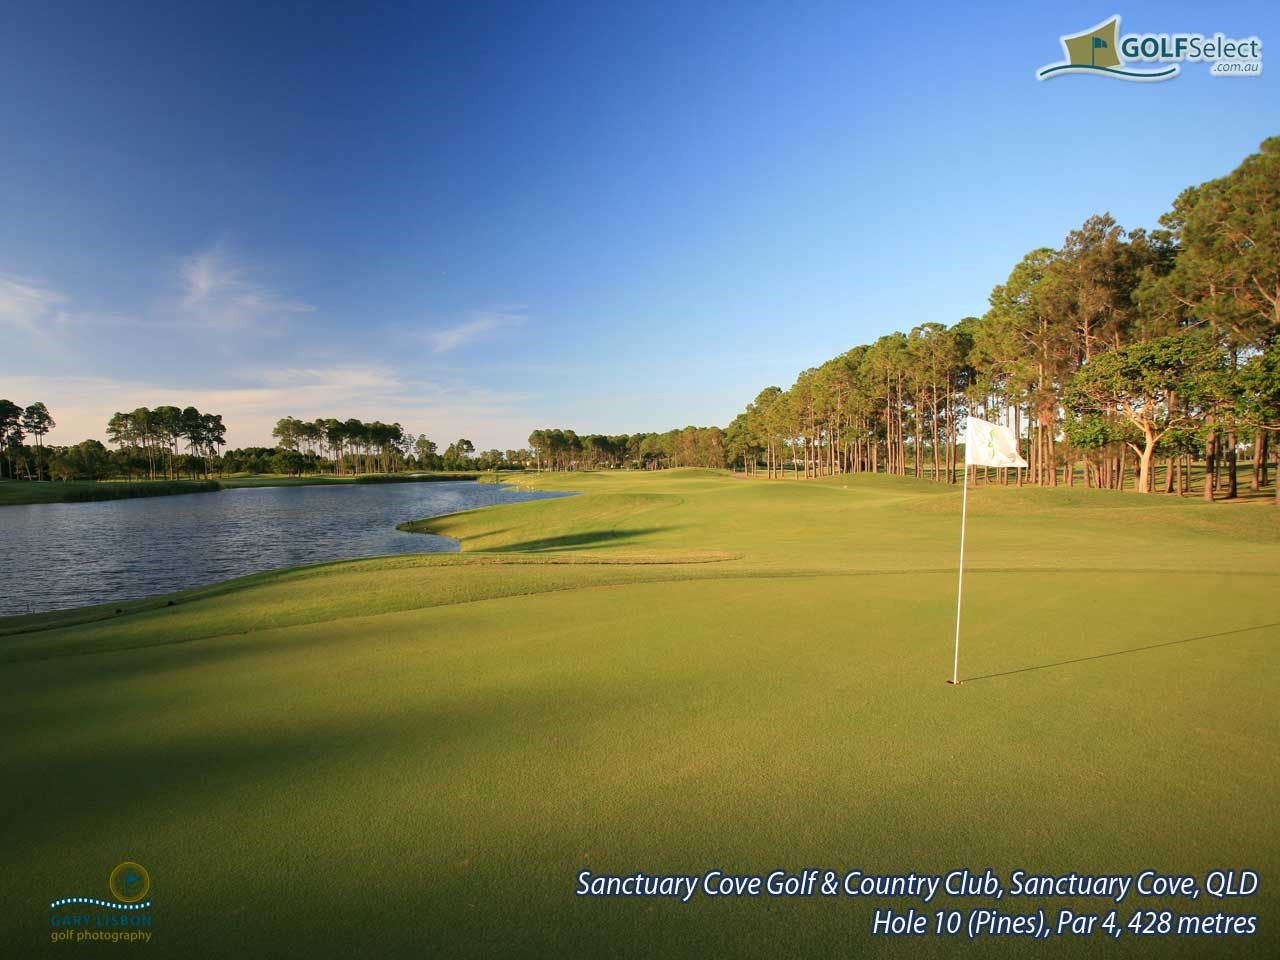 Sanctuary Cove Golf and Country Club - The Pines Hole 10 (The Pines), Par 4, 428 metres